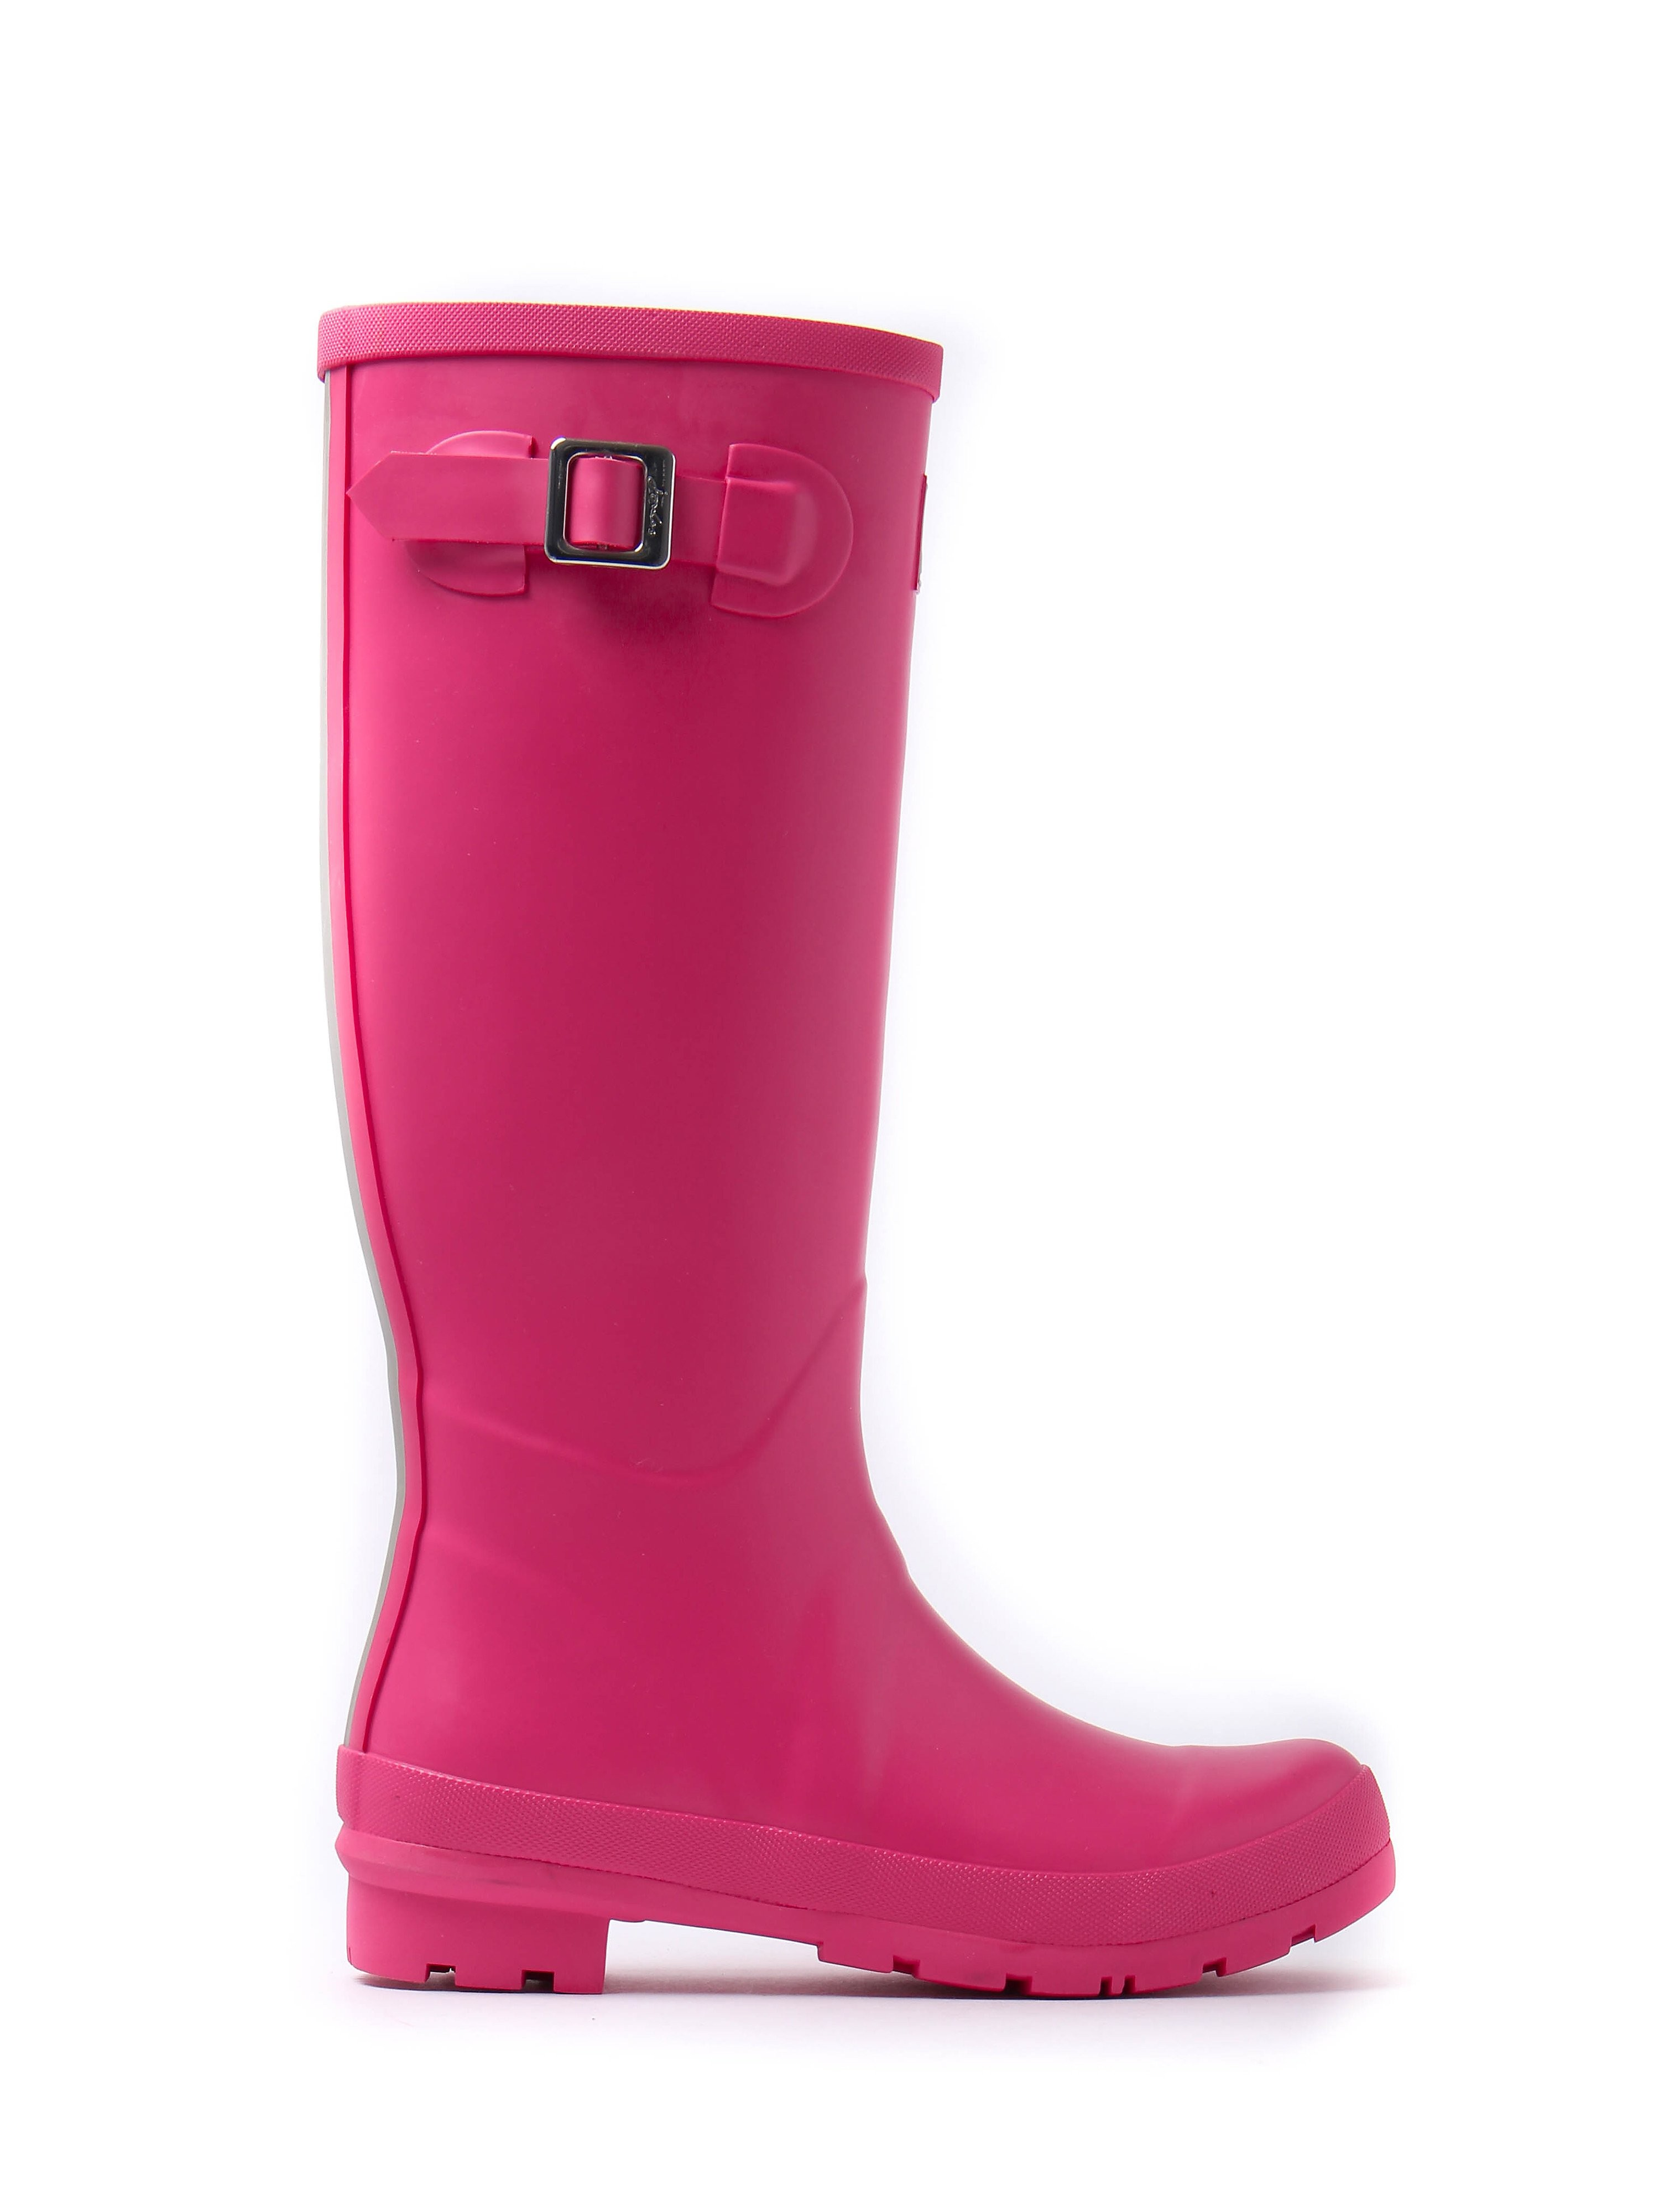 Joules Women's Full Height Rubber Wellington Boots - Pink